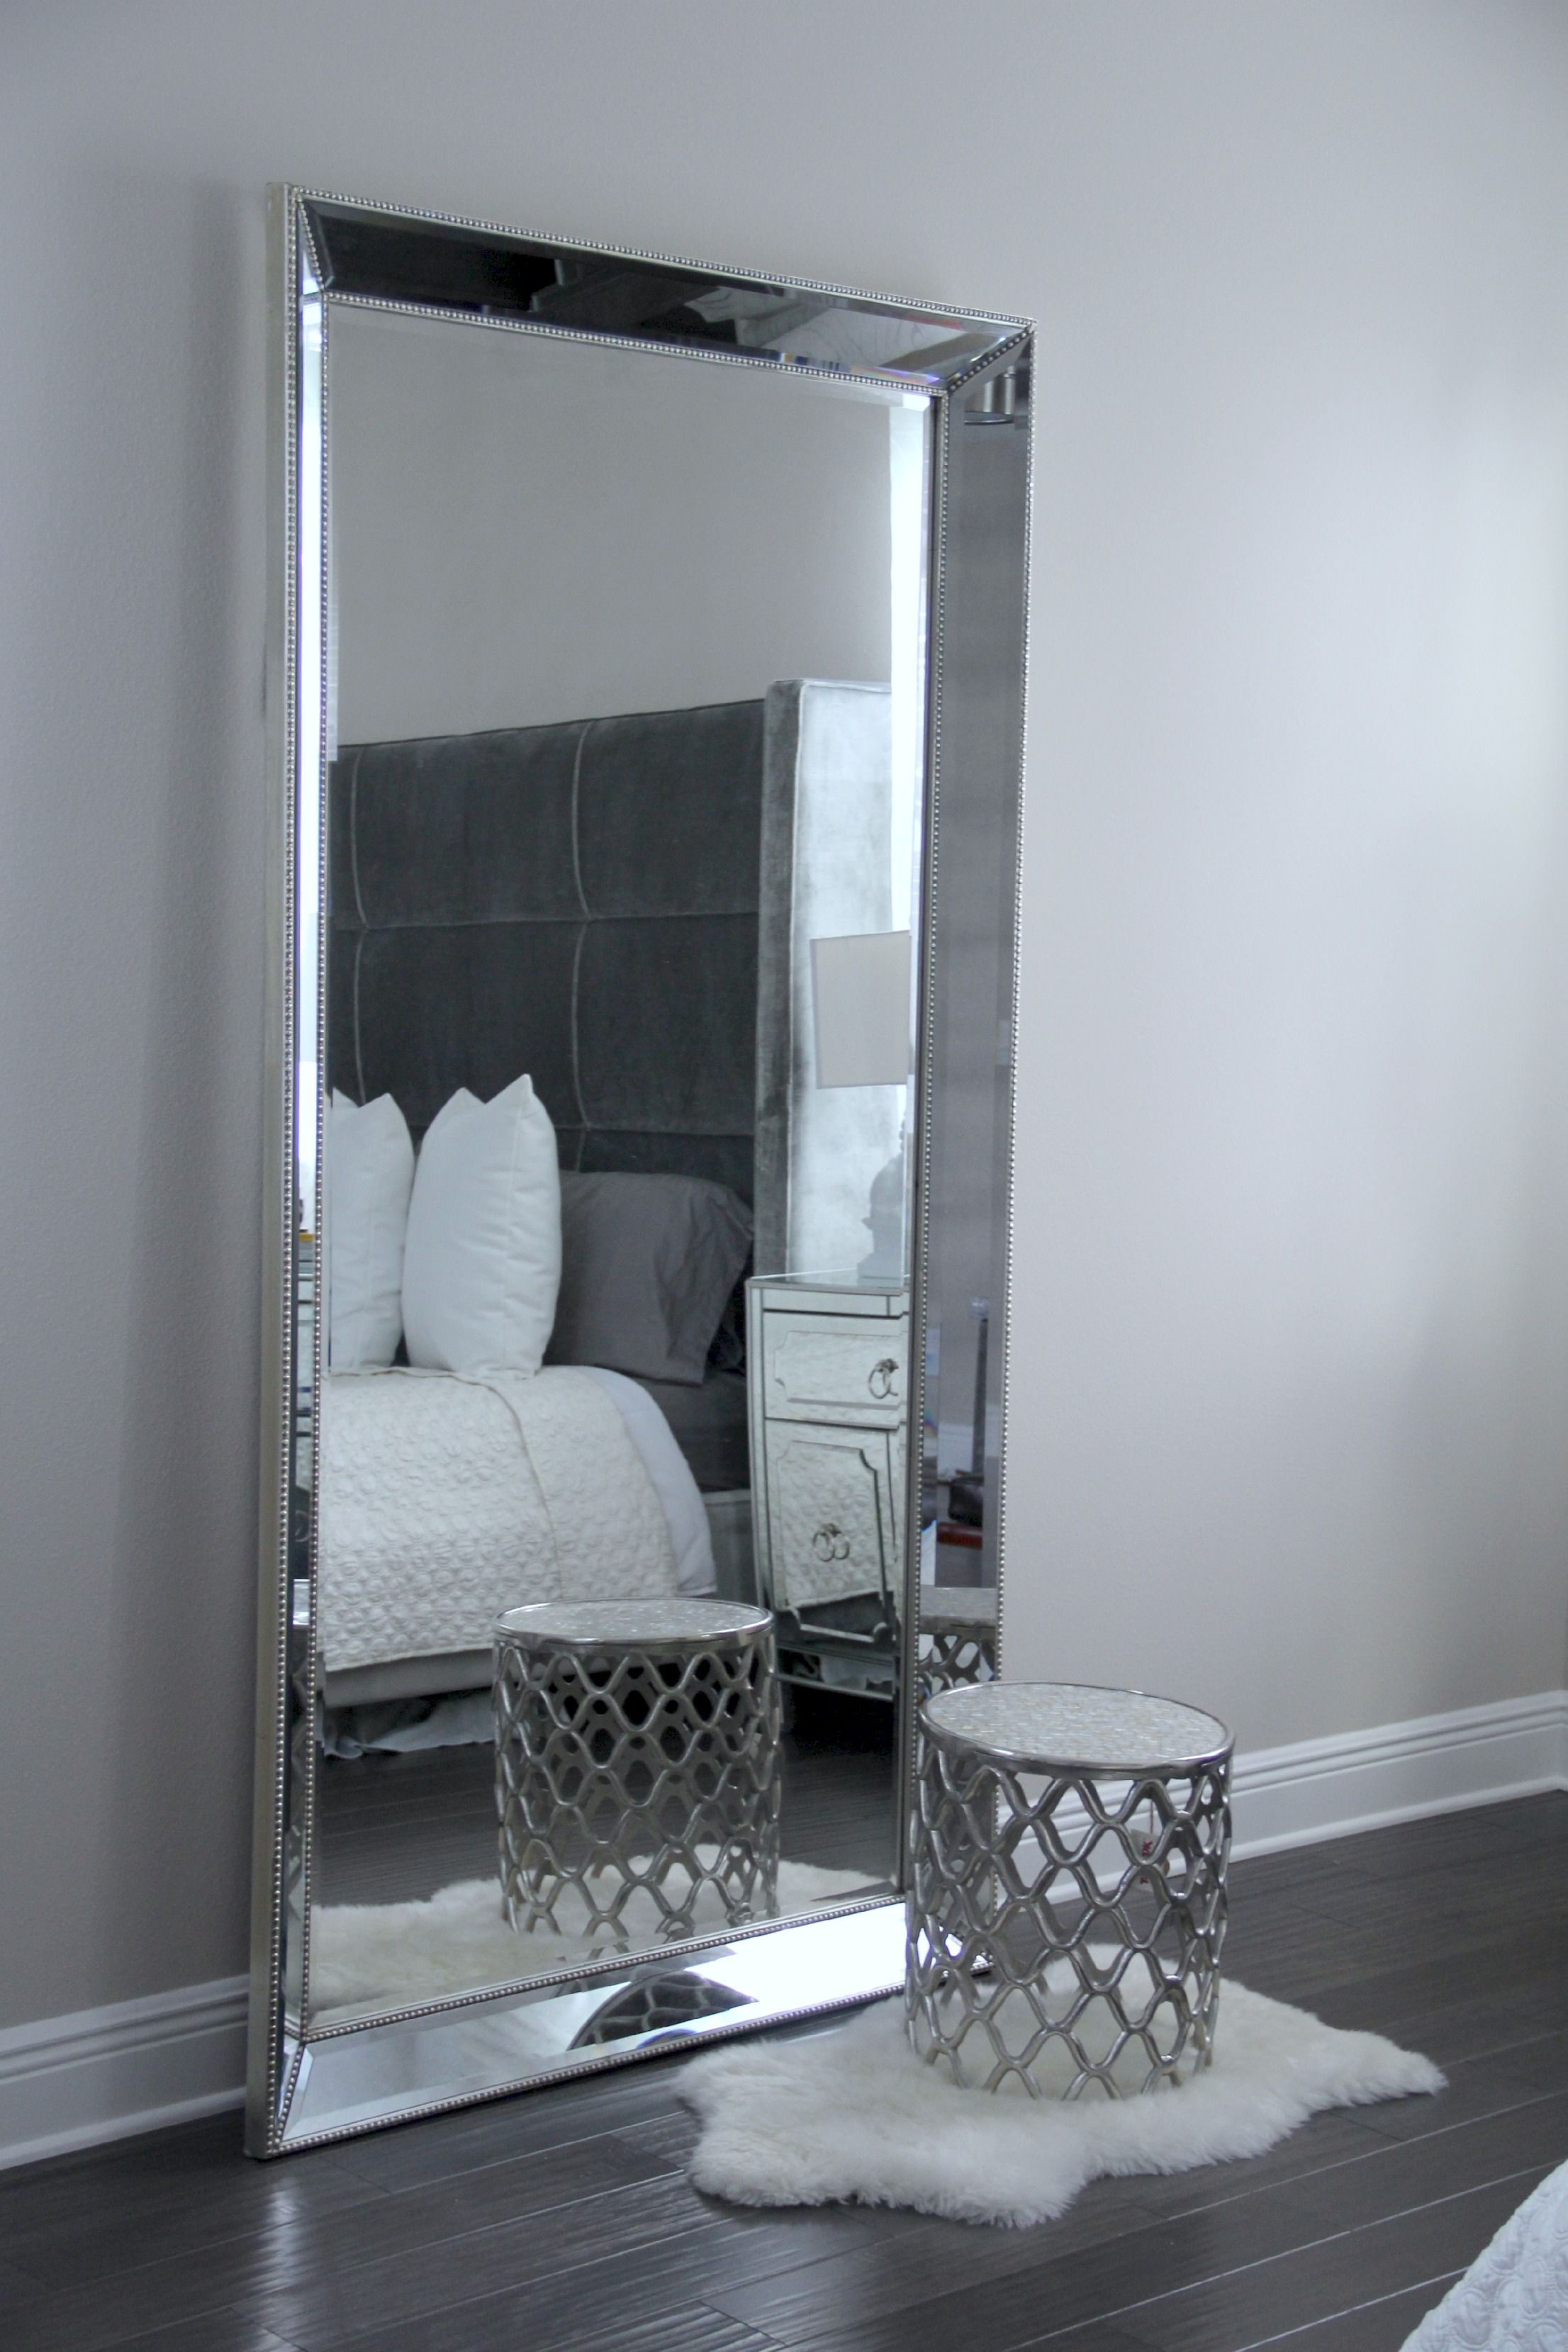 Bedroom Decor With Mirrors glamorous bedroom decor via @stallonemedia | master bedroom